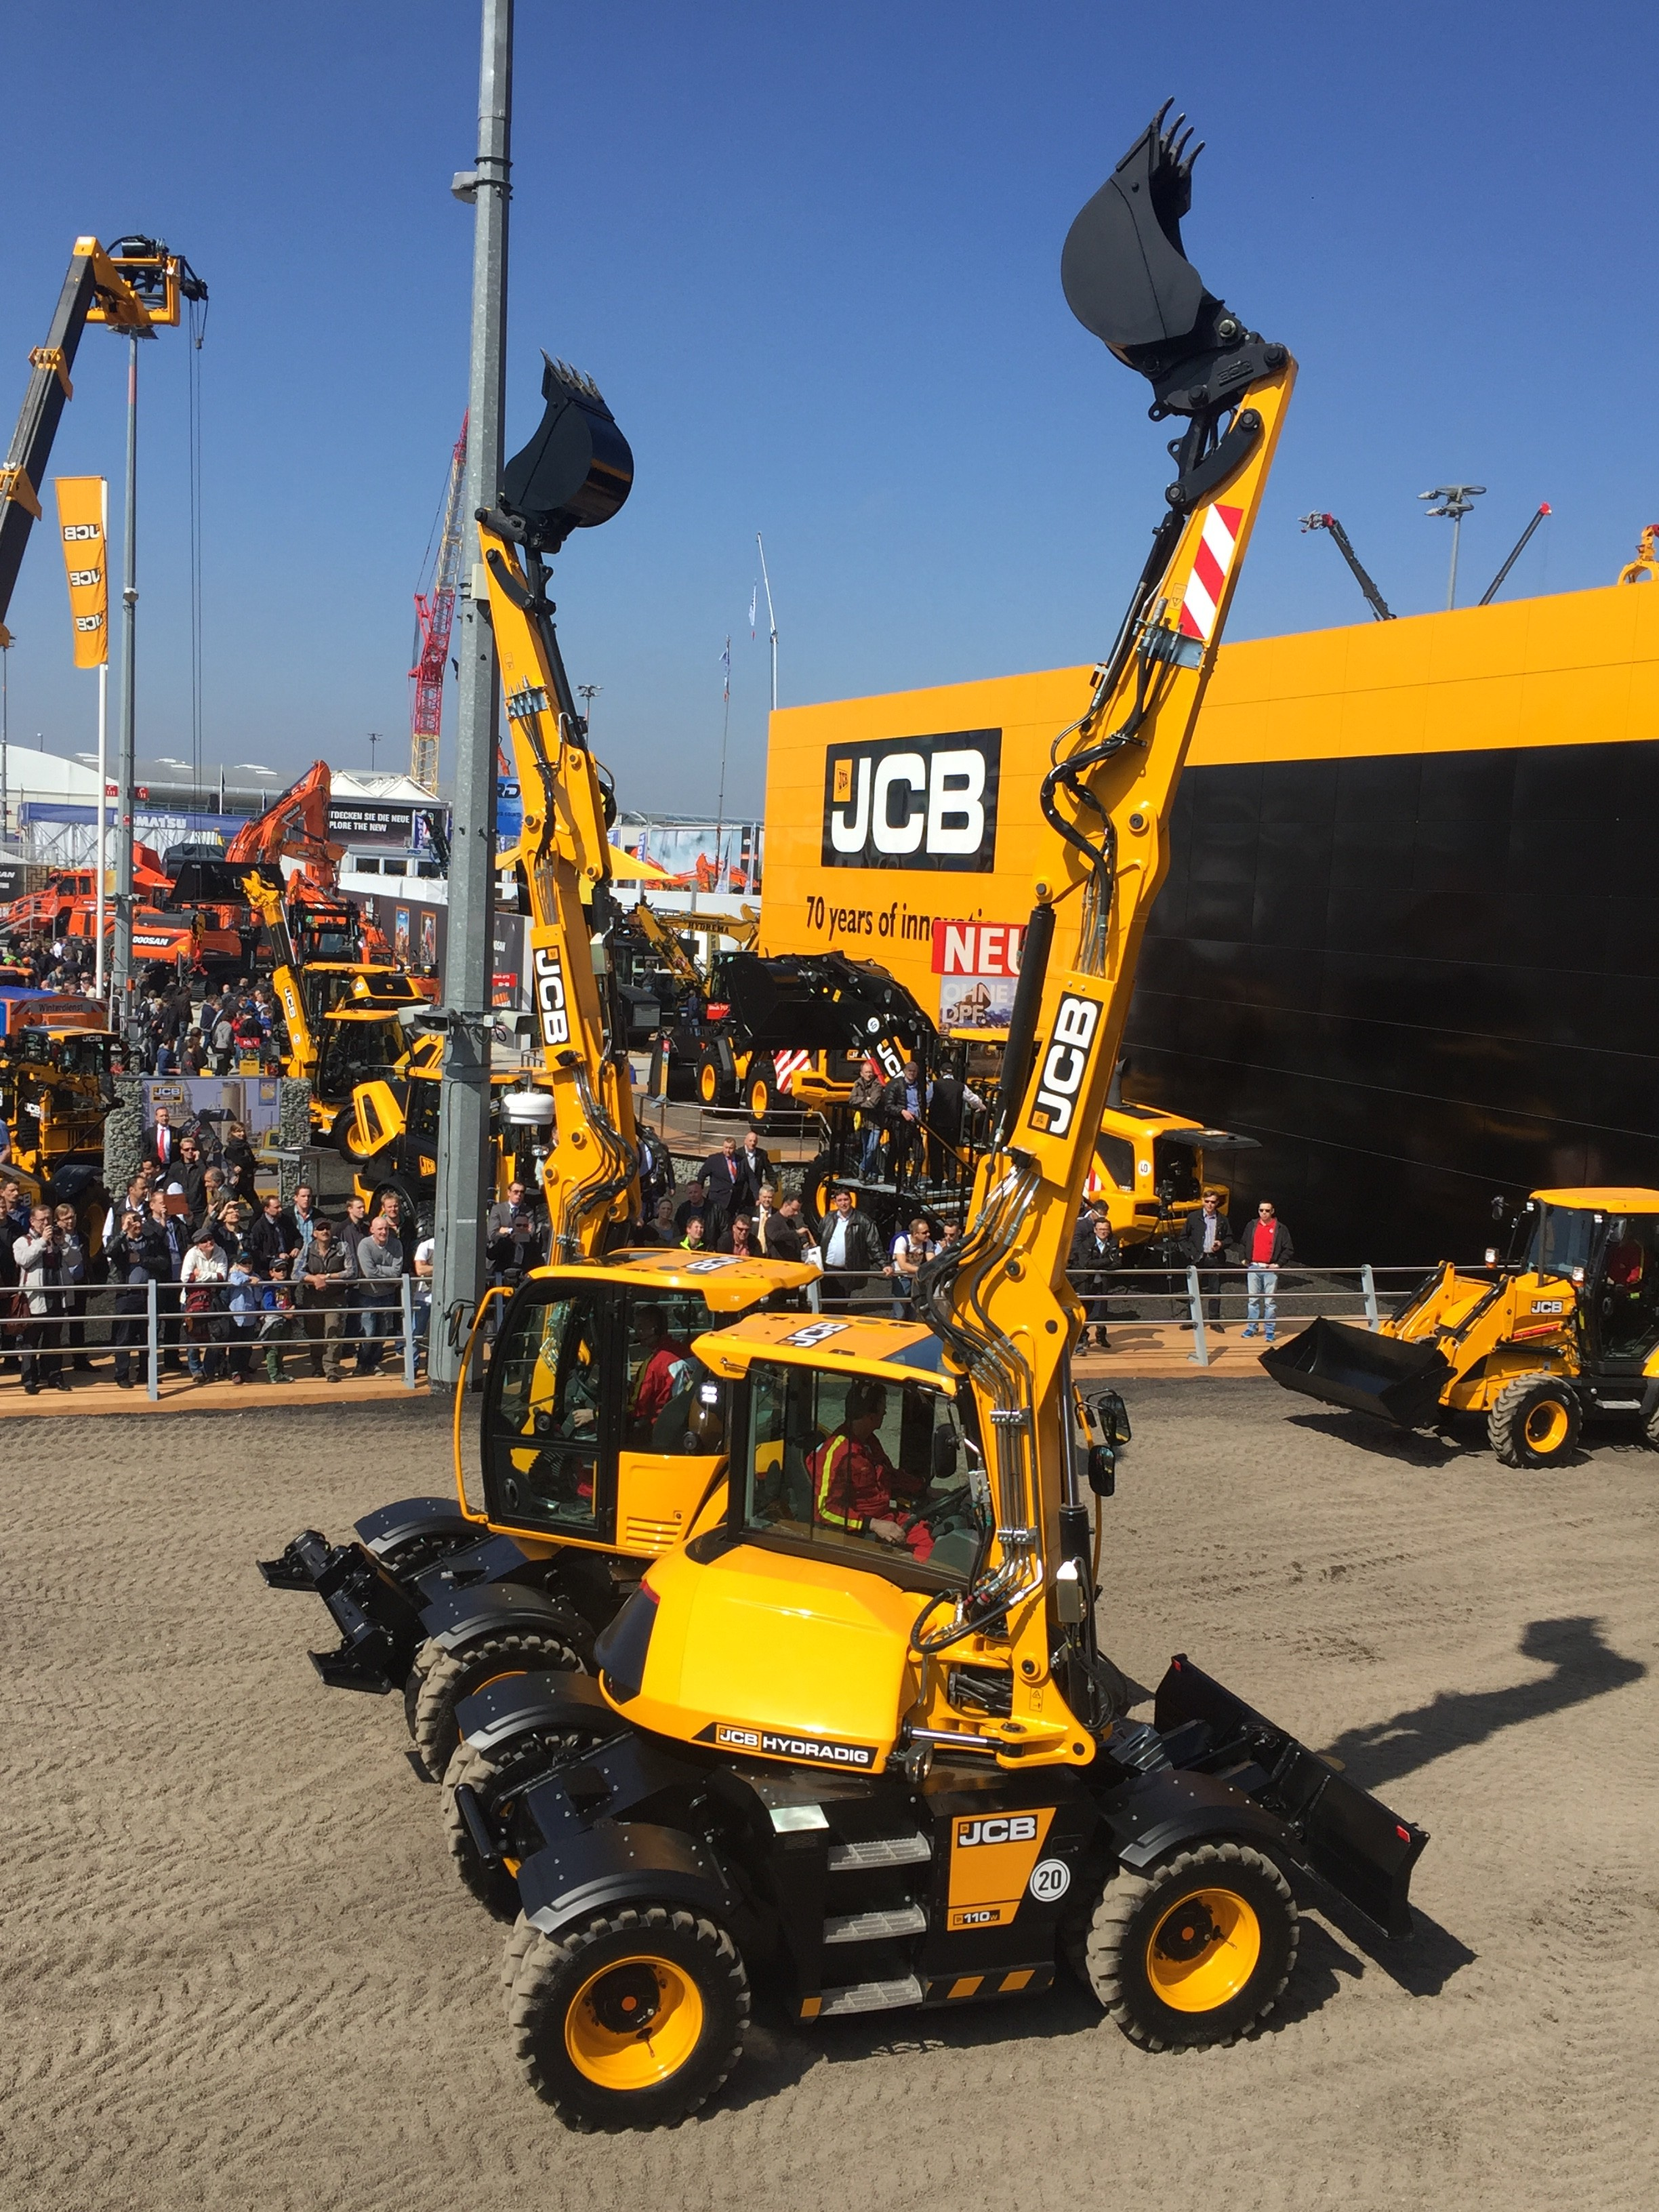 Landmark Jcb Hydradig Deal Placed Project Plant